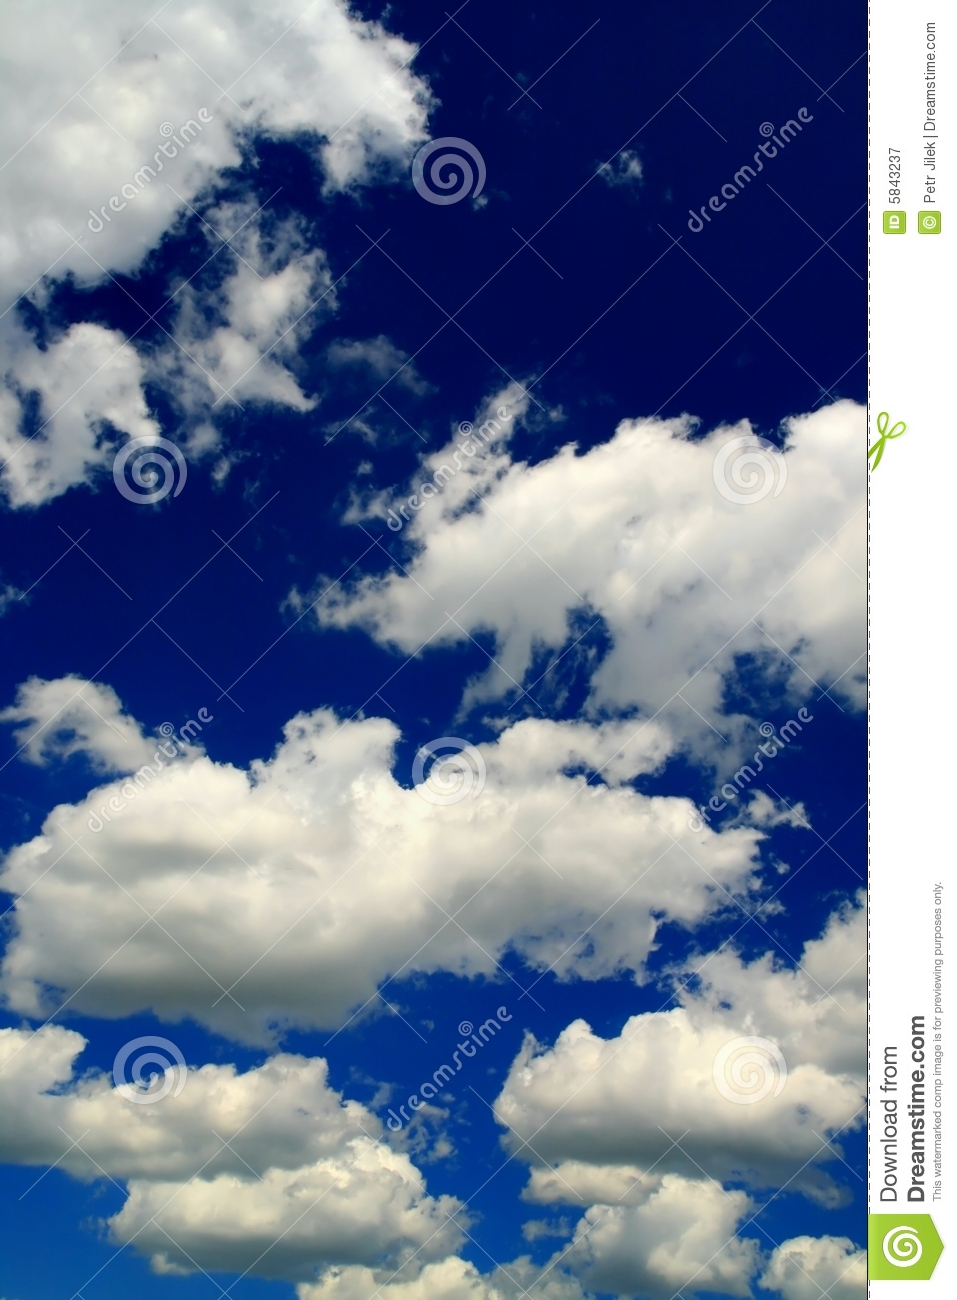 Blue Sky And Beauty White Clouds Royalty Free Stock ...